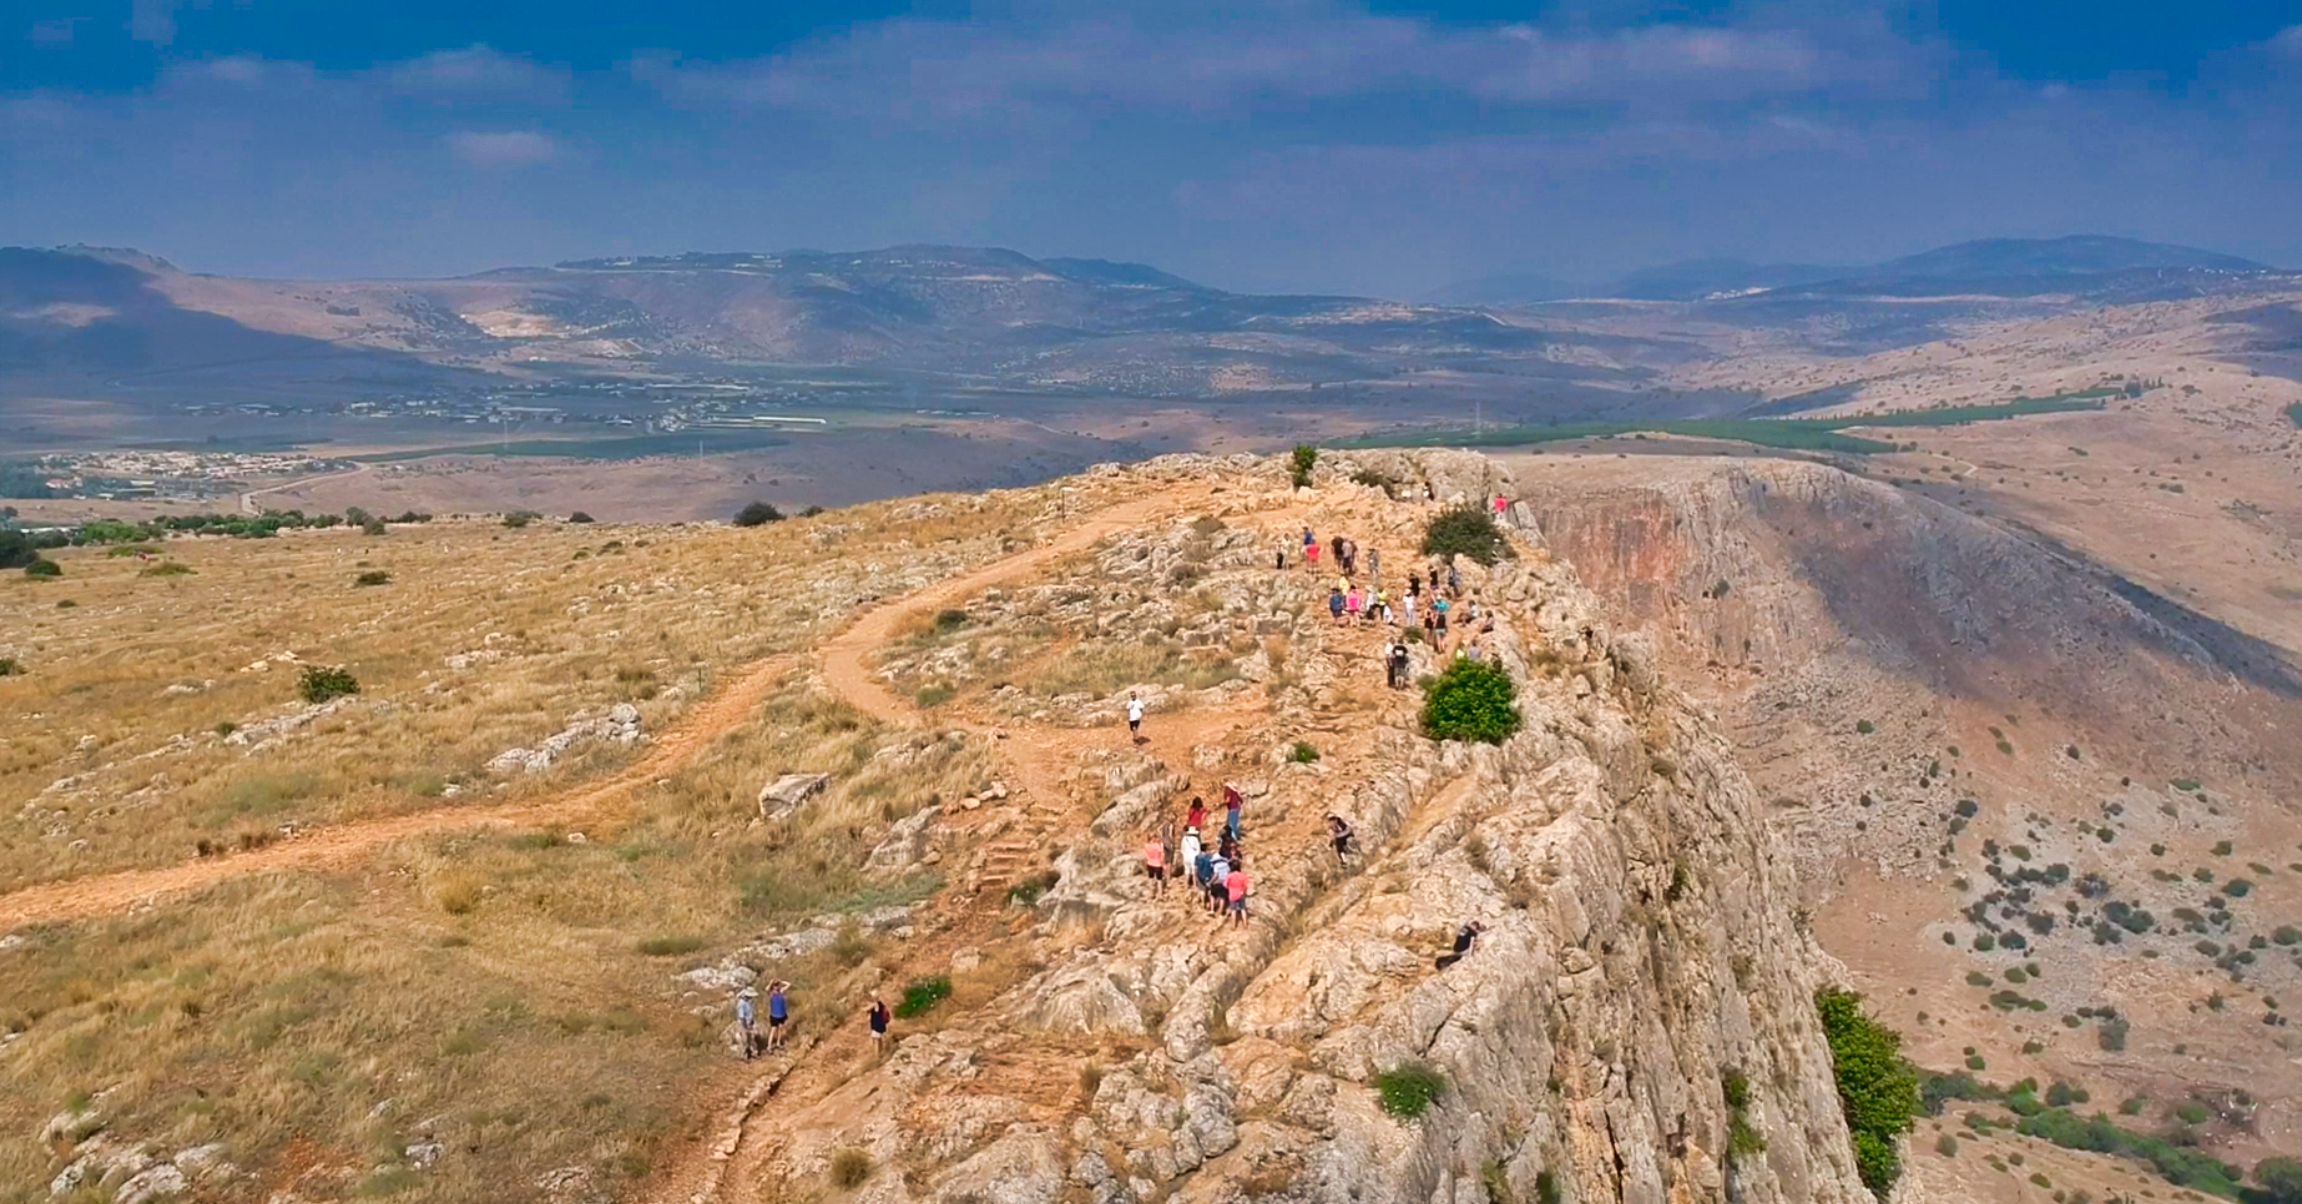 Drone video of Mt. Arbel